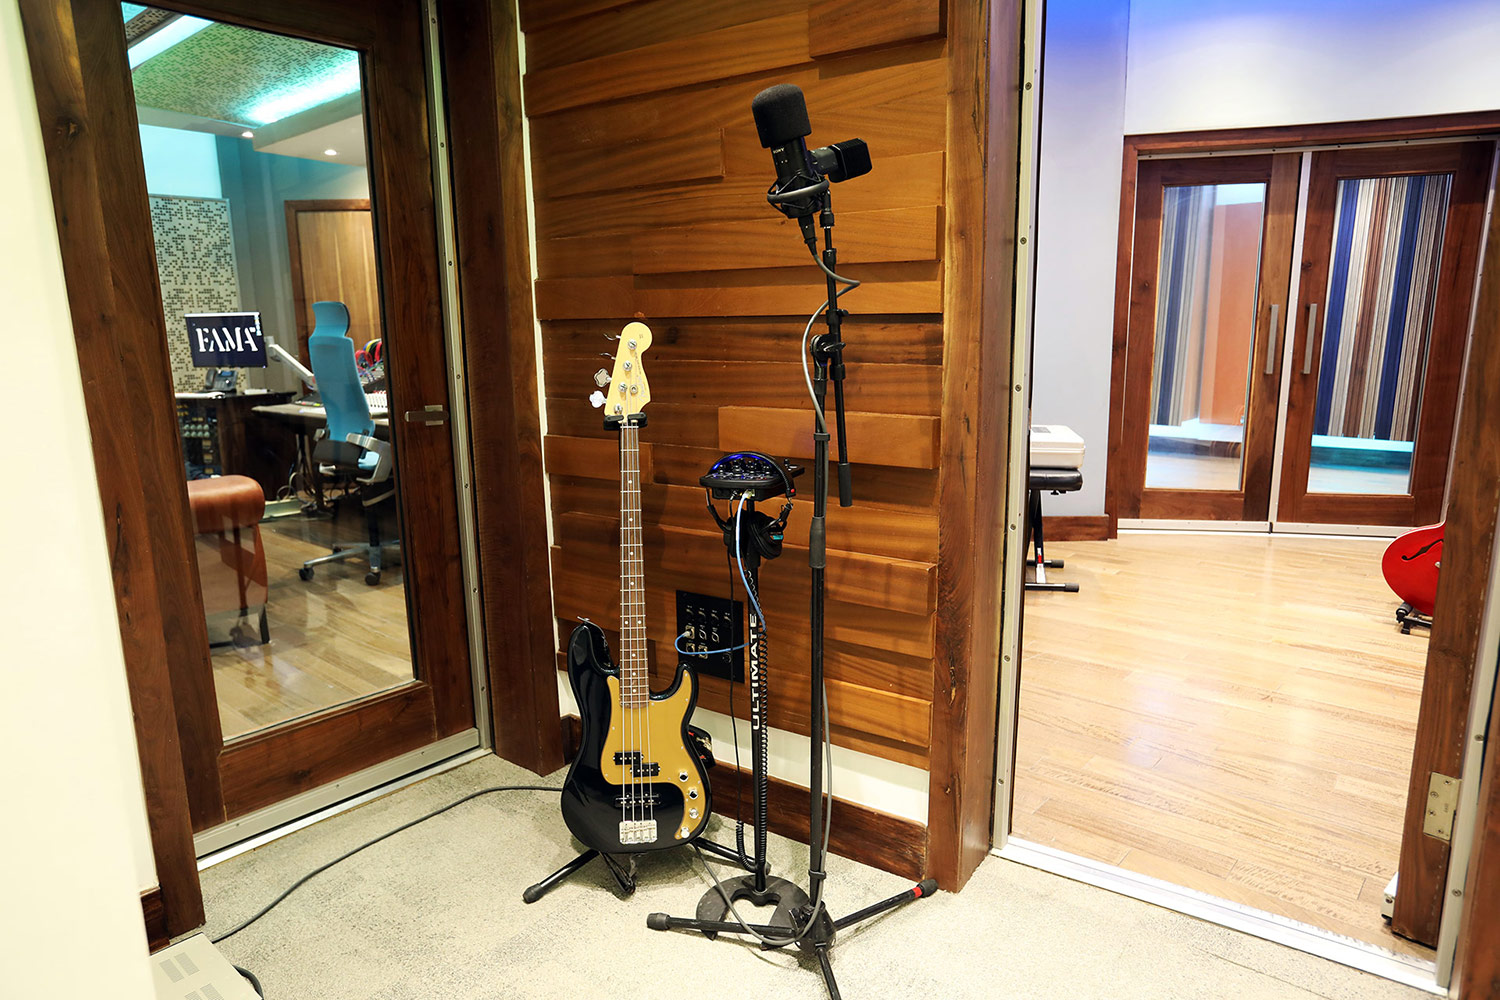 FAMA Studio owner Luis Betances retained WSDG Latin for an acoustic and aesthetic studio design to create a dream recording studio that meets his production needs in Santo Domingo, Dominican Republic. CR A Sound lock.